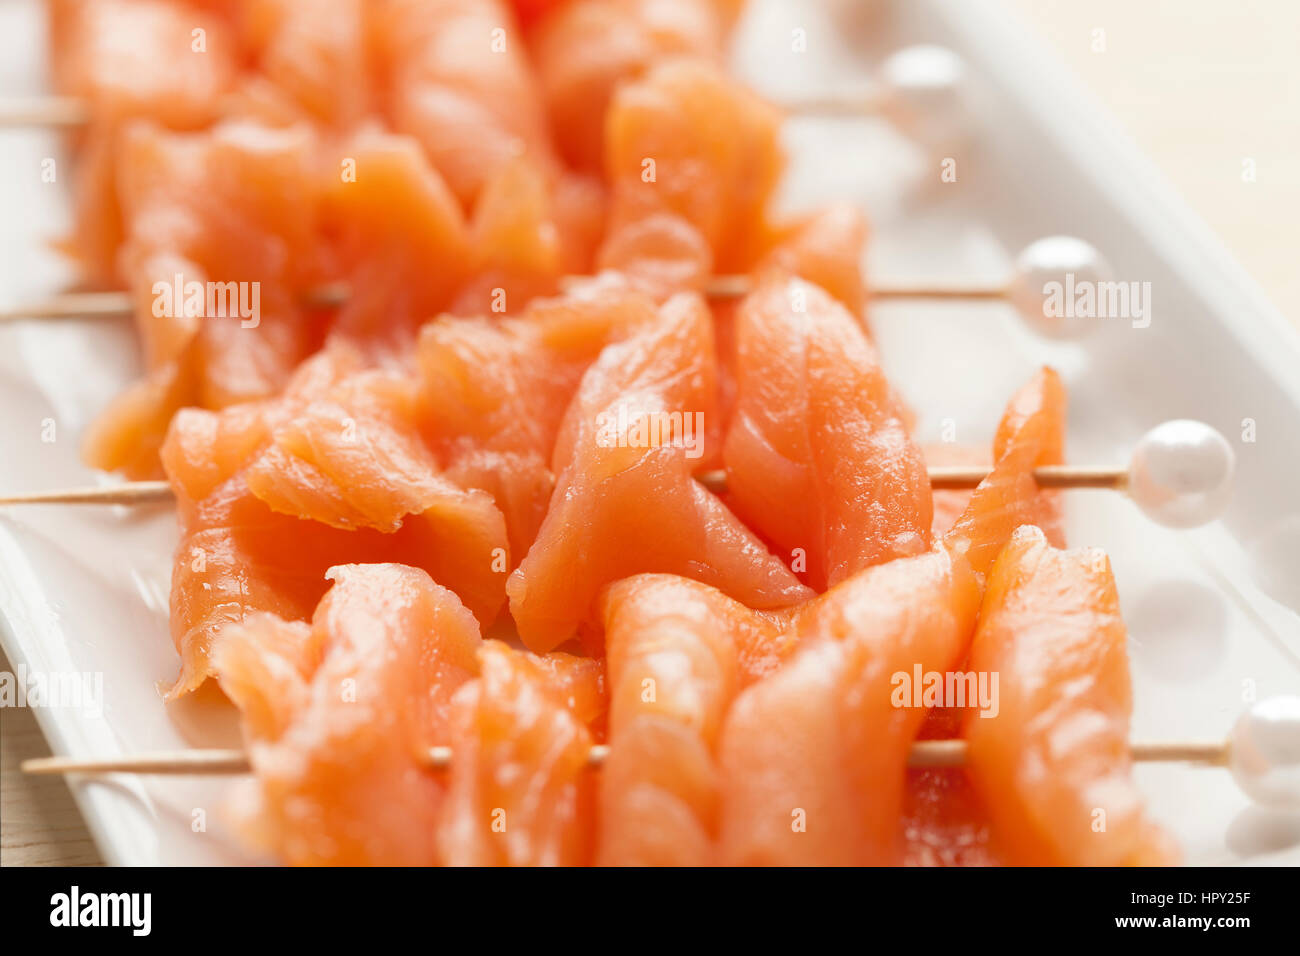 Smoked salmon on cocktail picks with a pearl as a festive snack - Stock Image